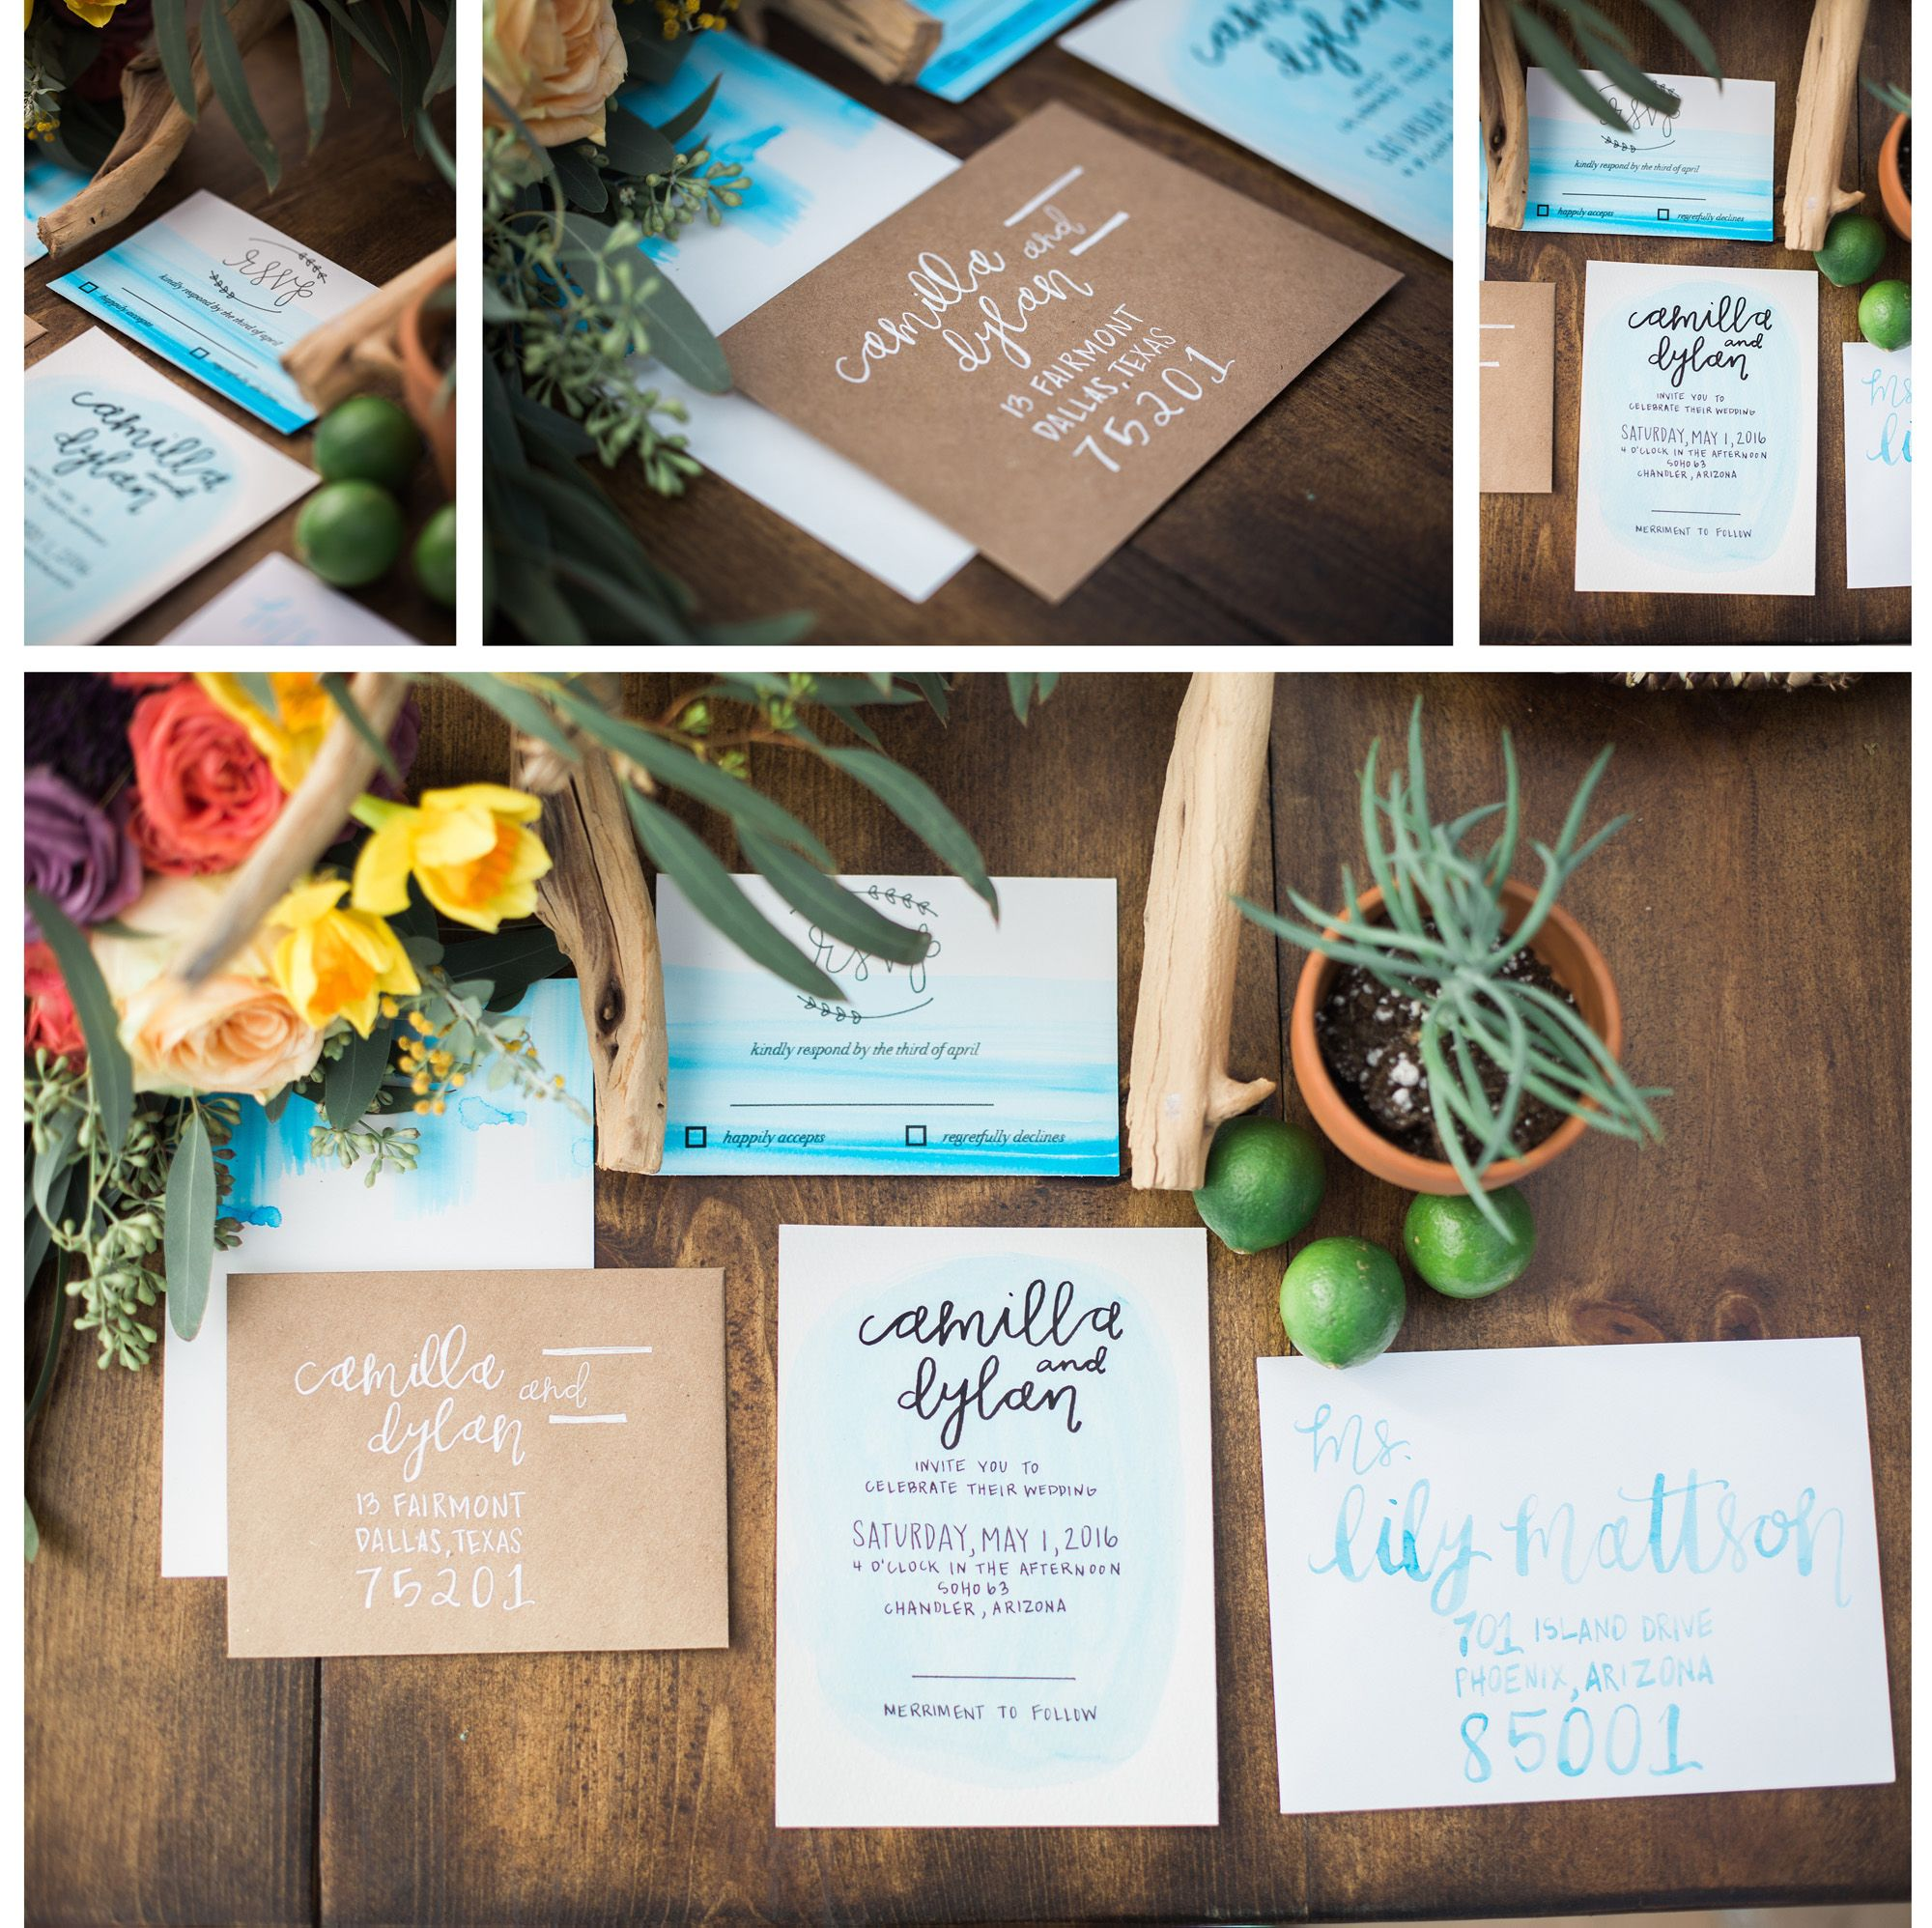 Watercolor southwest wedding invitations the creative team venue watercolor southwest wedding invitations the creative team venue and furniture rentalstremaine ranch floral malvernweather Images